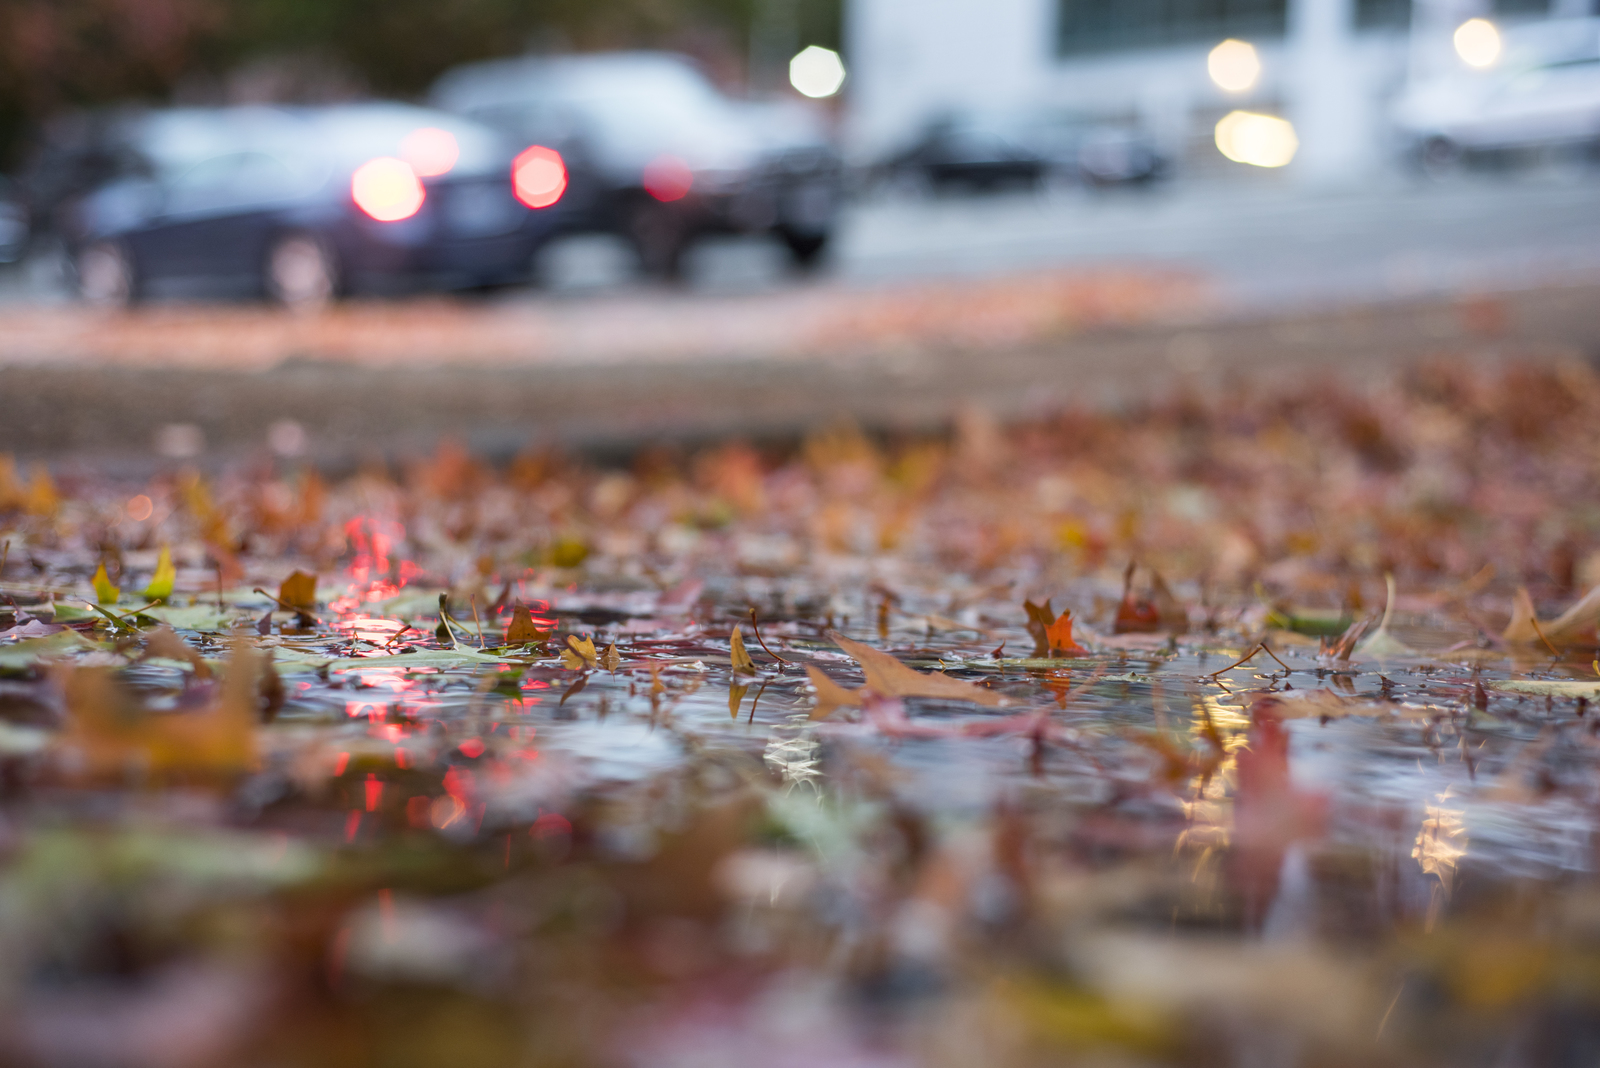 Autumn in rainy Seattle. Photo by Hannah Letinich.